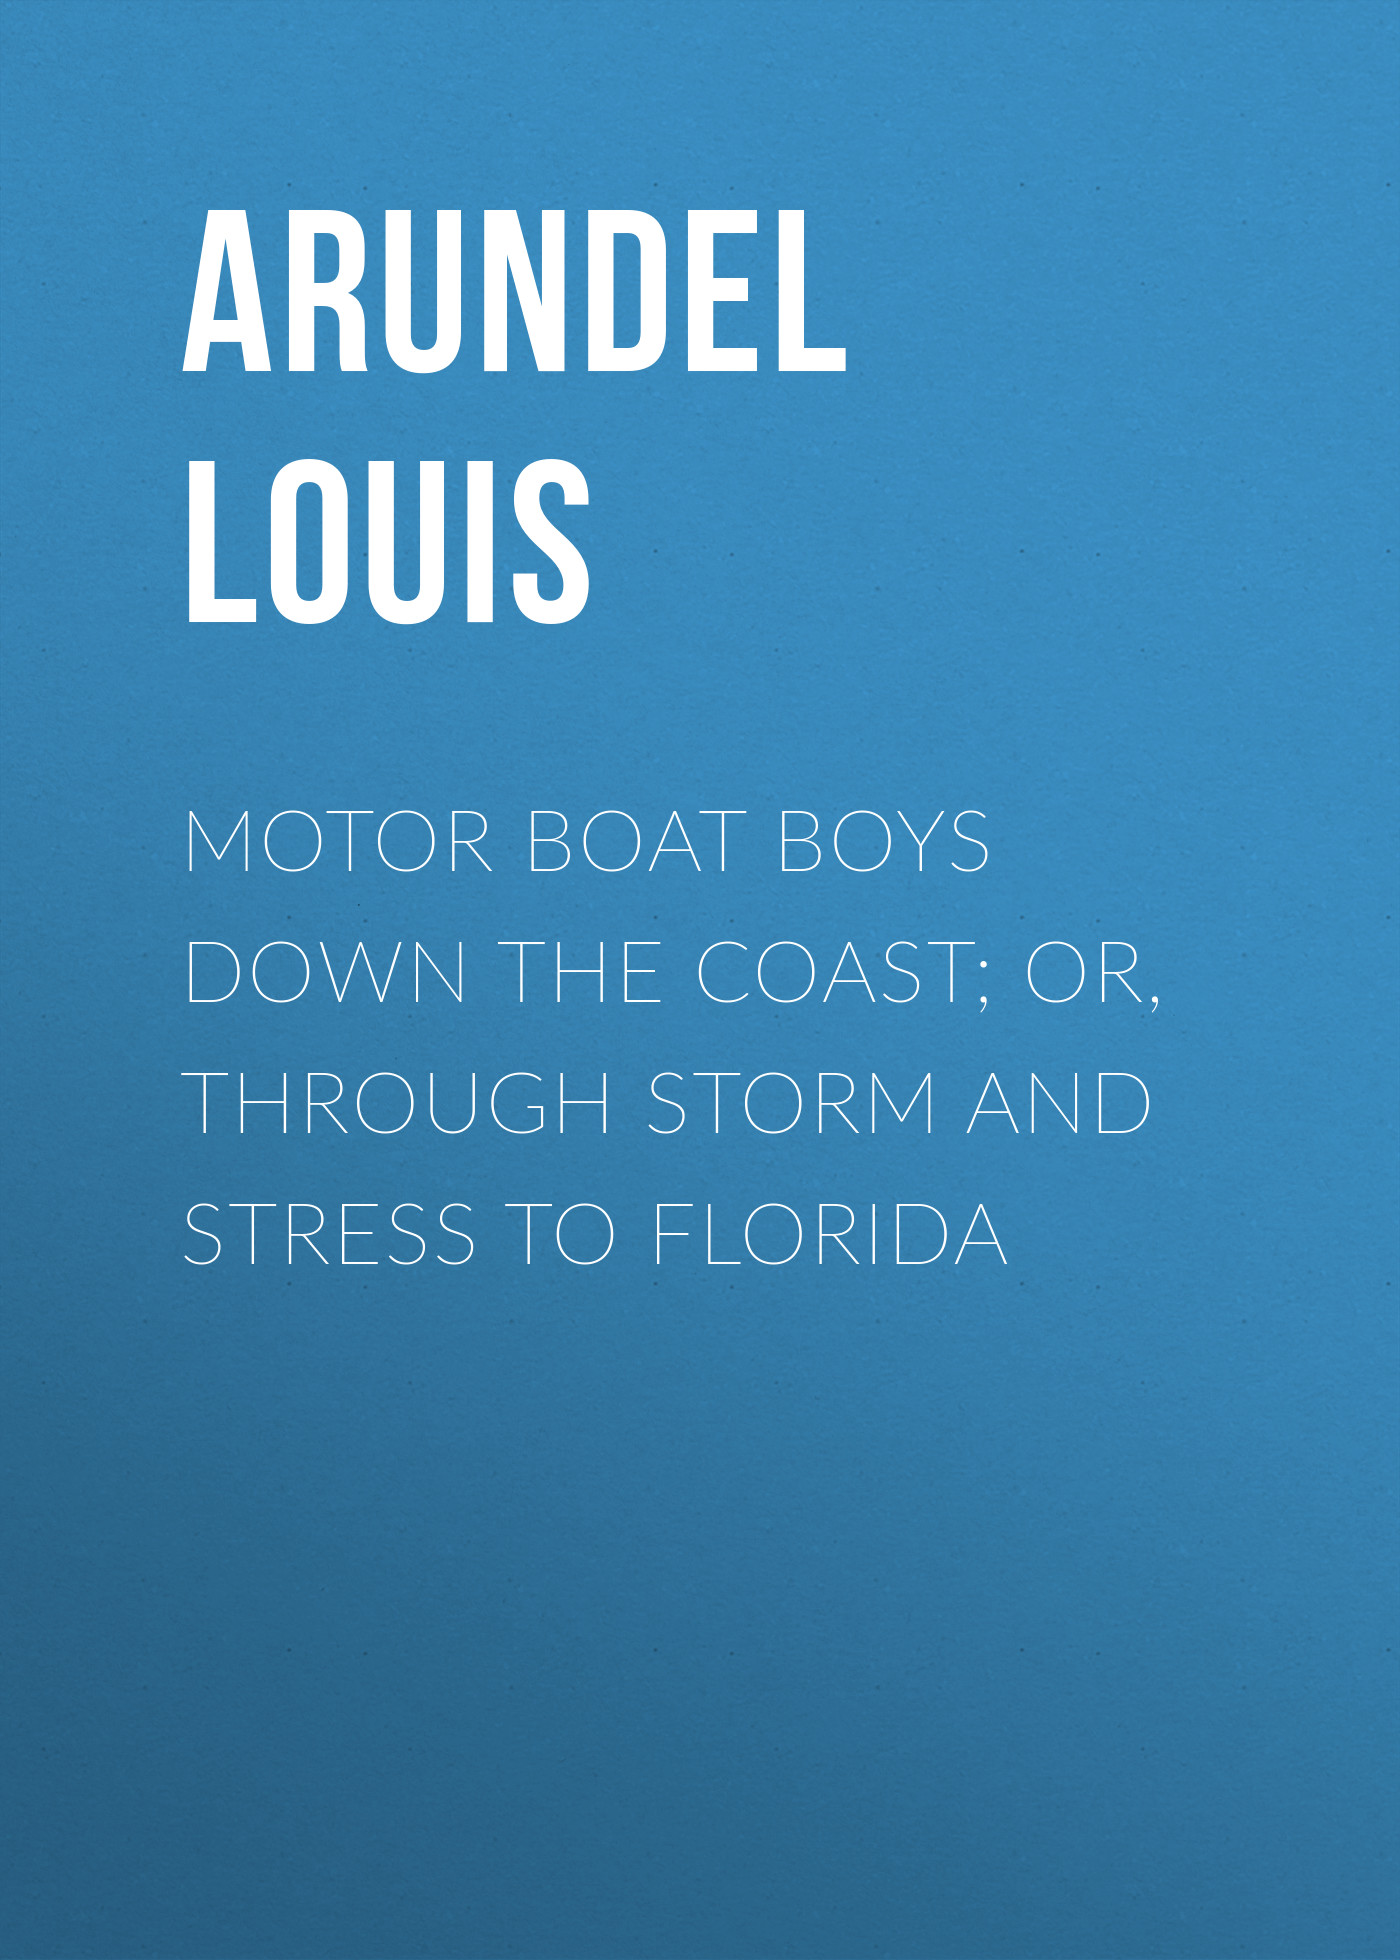 Arundel Louis Motor Boat Boys Down the Coast; or, Through Storm and Stress to Florida 220vac loud 112db motor driven air raid siren metal horn industry boat alarm